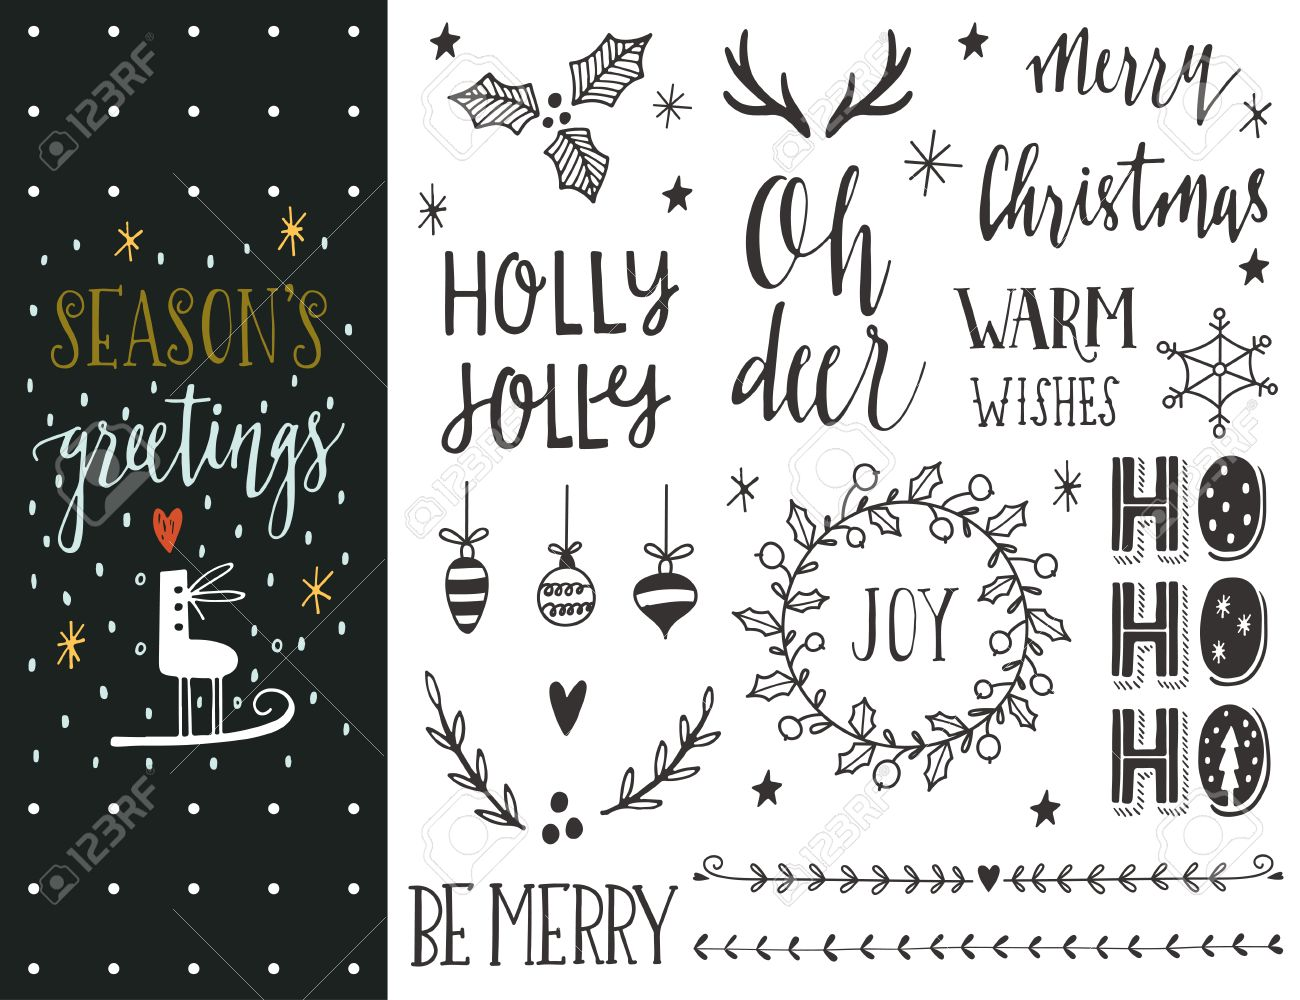 Seasons greetings hand drawn christmas holiday collection with seasons greetings hand drawn christmas holiday collection with lettering and decoration elements for greeting cards kristyandbryce Gallery